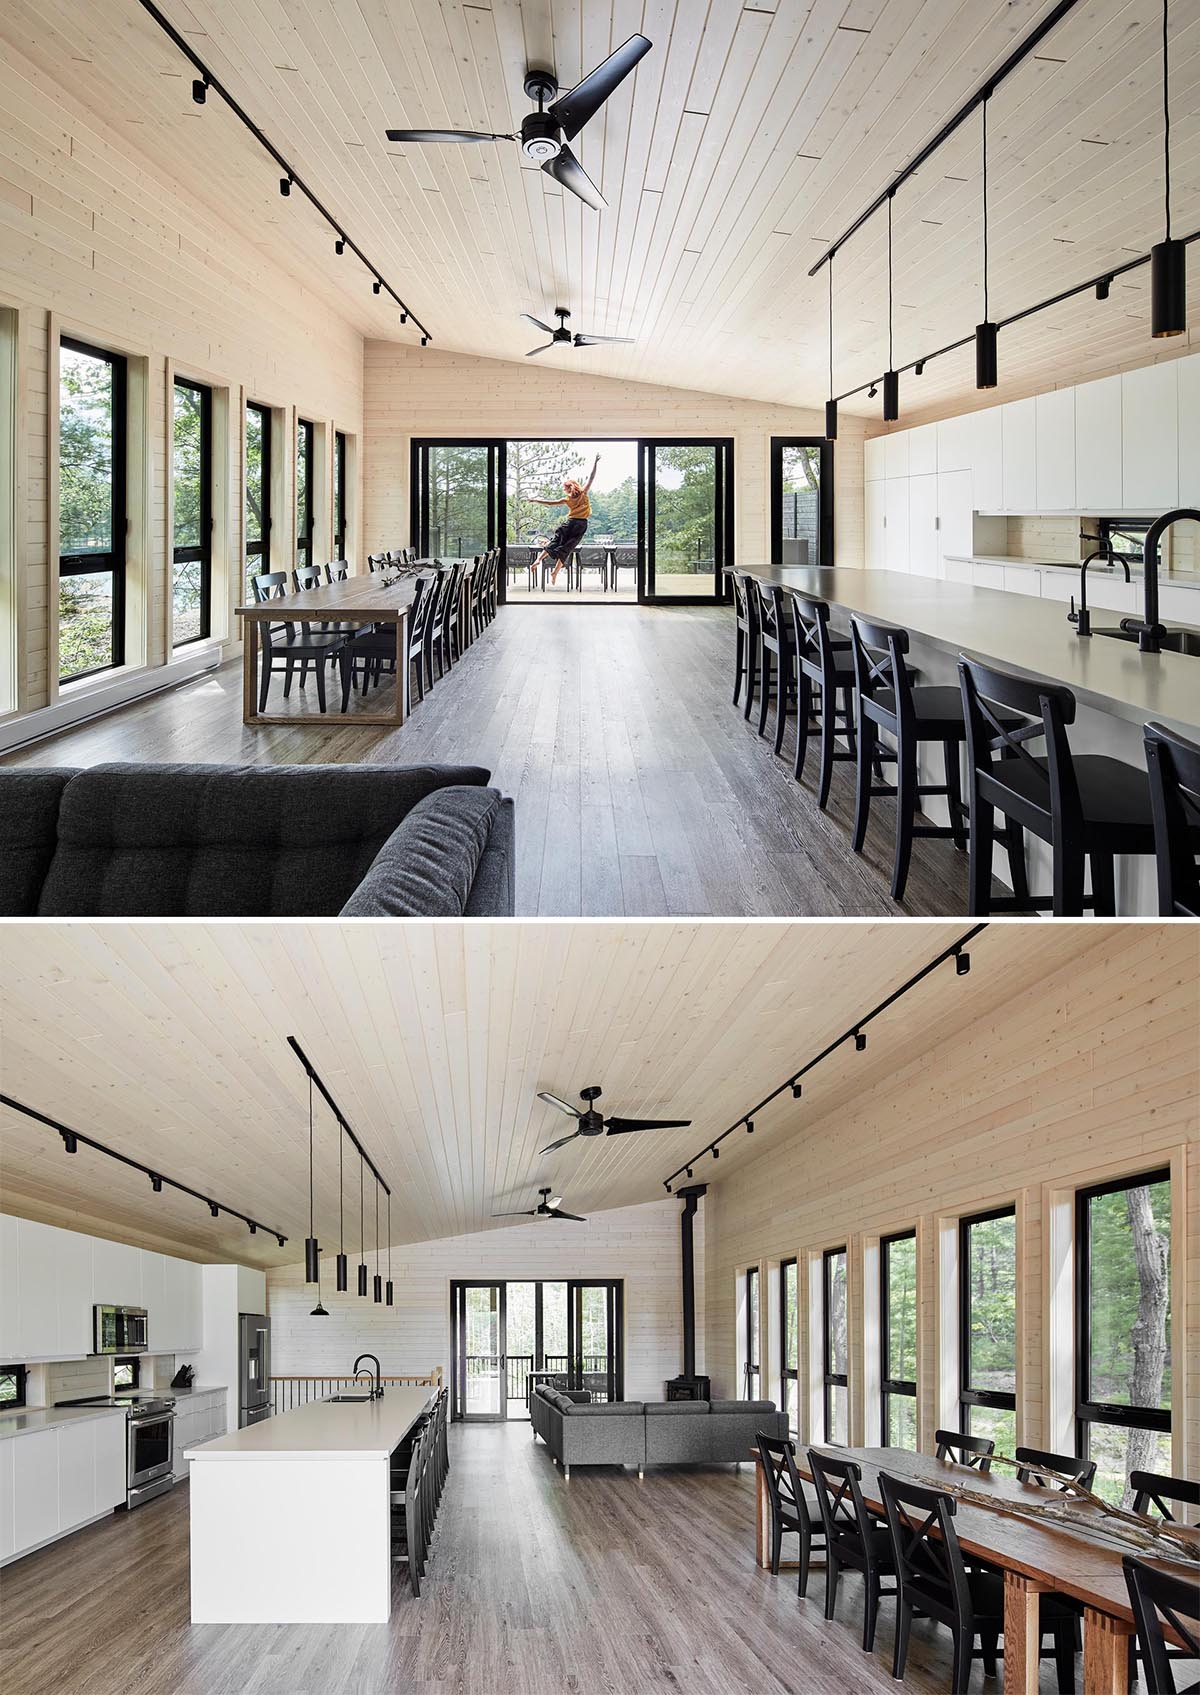 The upper floor of the home is dedicated to the living room, dining area, and kitchen. In the living room, there's an L-shaped sofa that's focused on a matte black fireplace, while the dining area has been furnished with multiple dining tables, ideal for large groups.